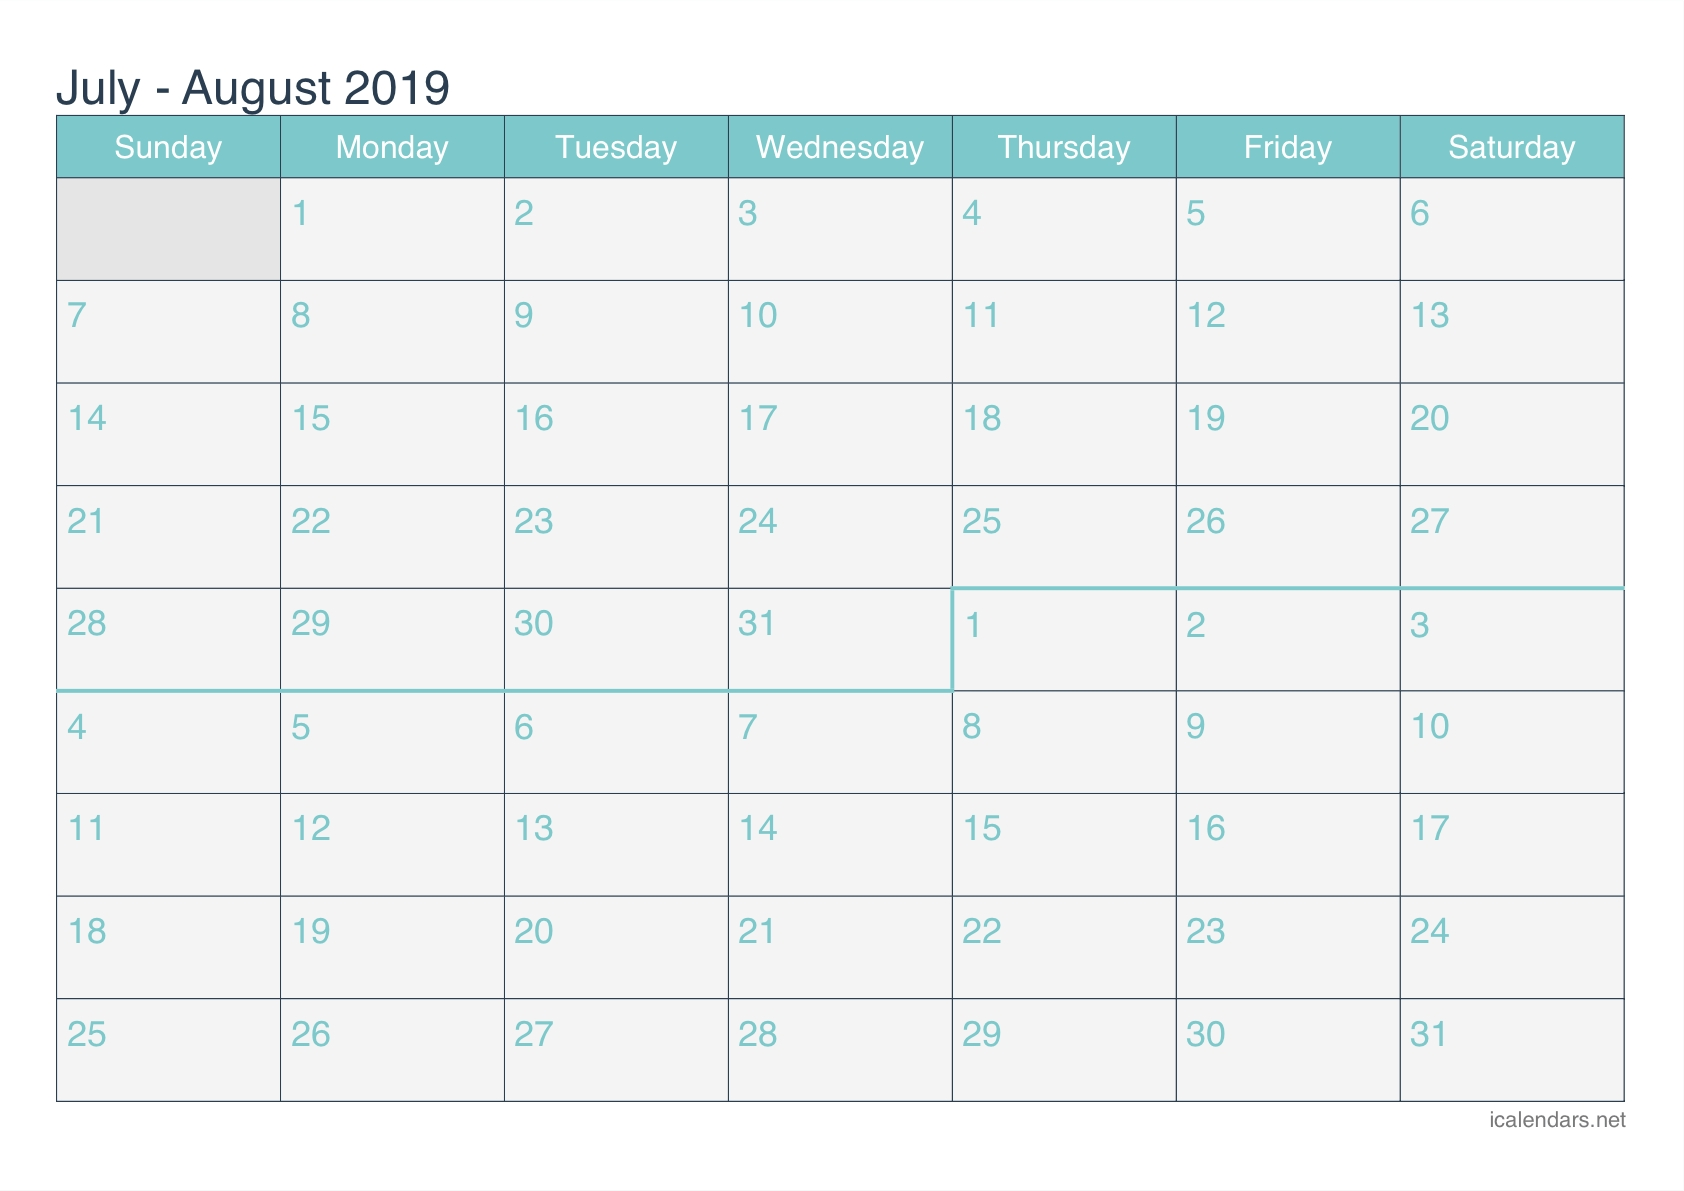 July And August 2019 Printable Calendar - Icalendars throughout Printable July Through August Calendars